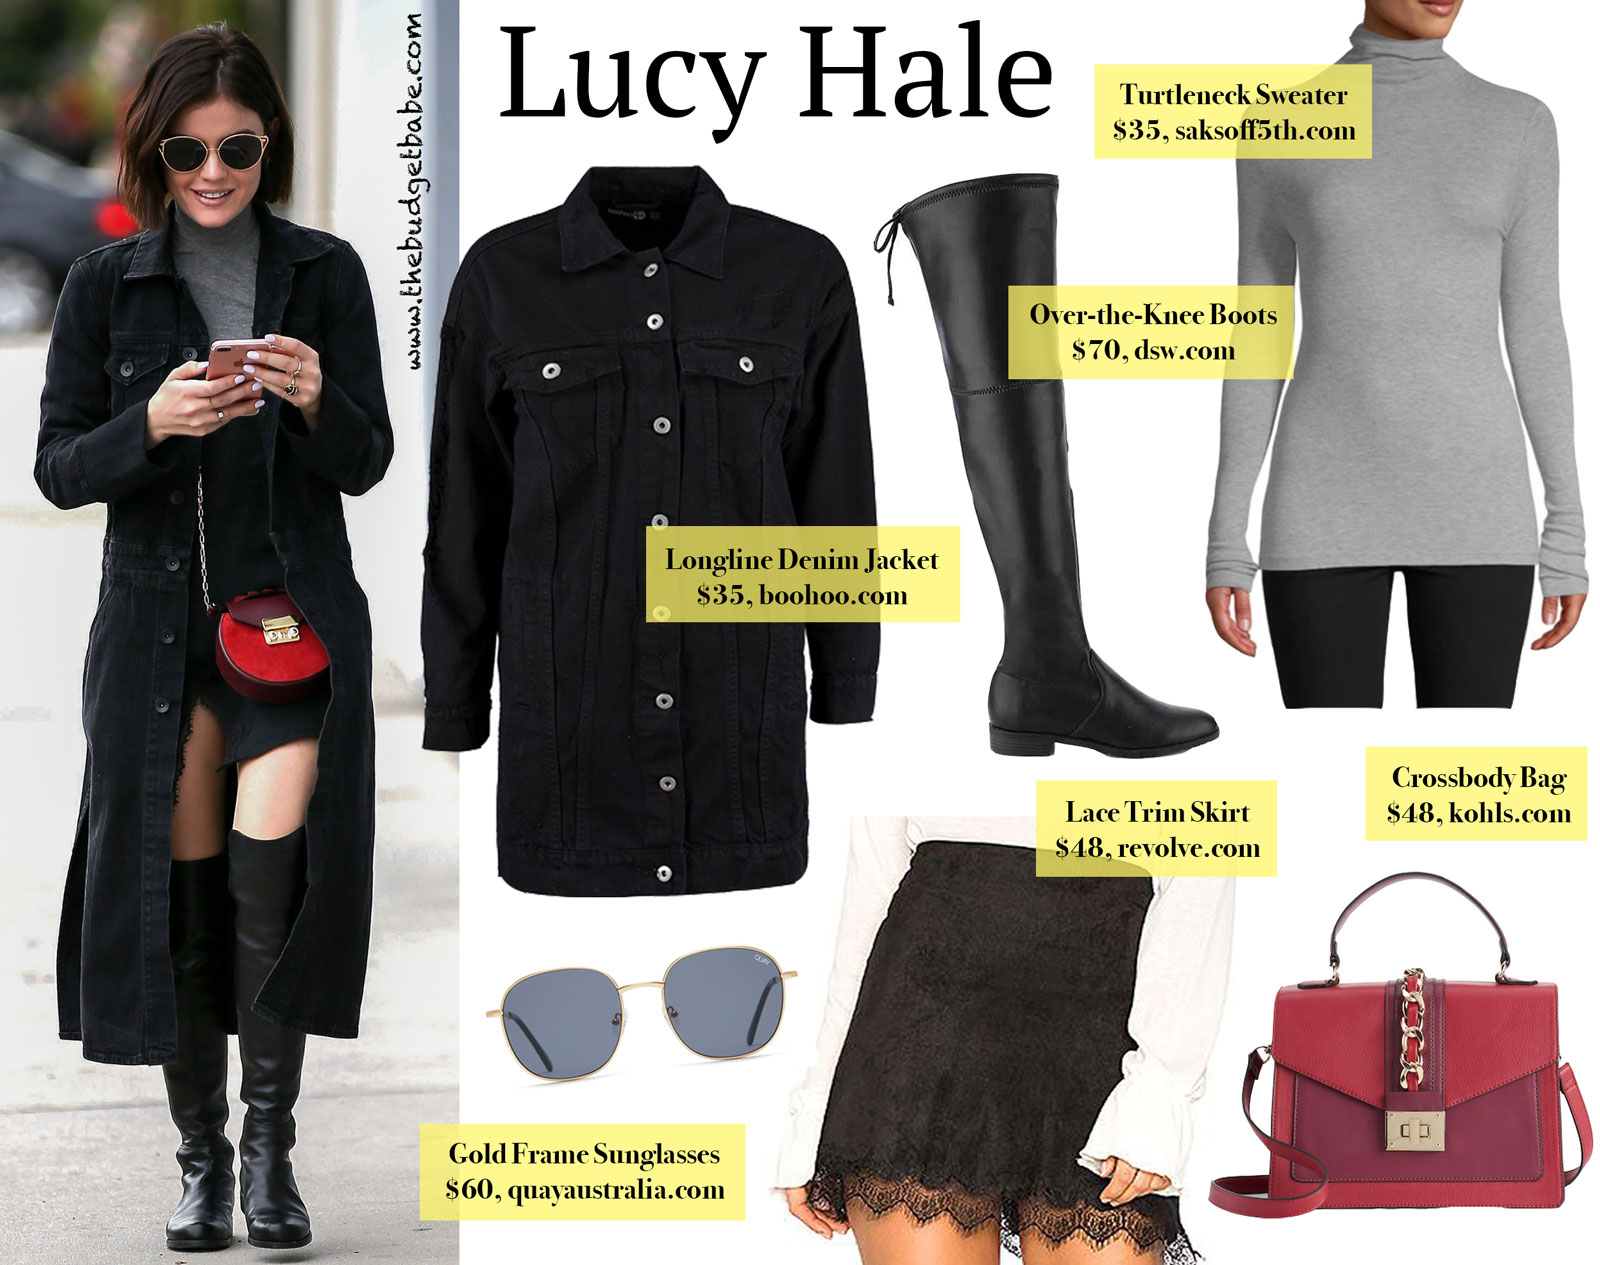 Lucy Hale Long Denim Jacket and Over the Knee Boots Look for Less